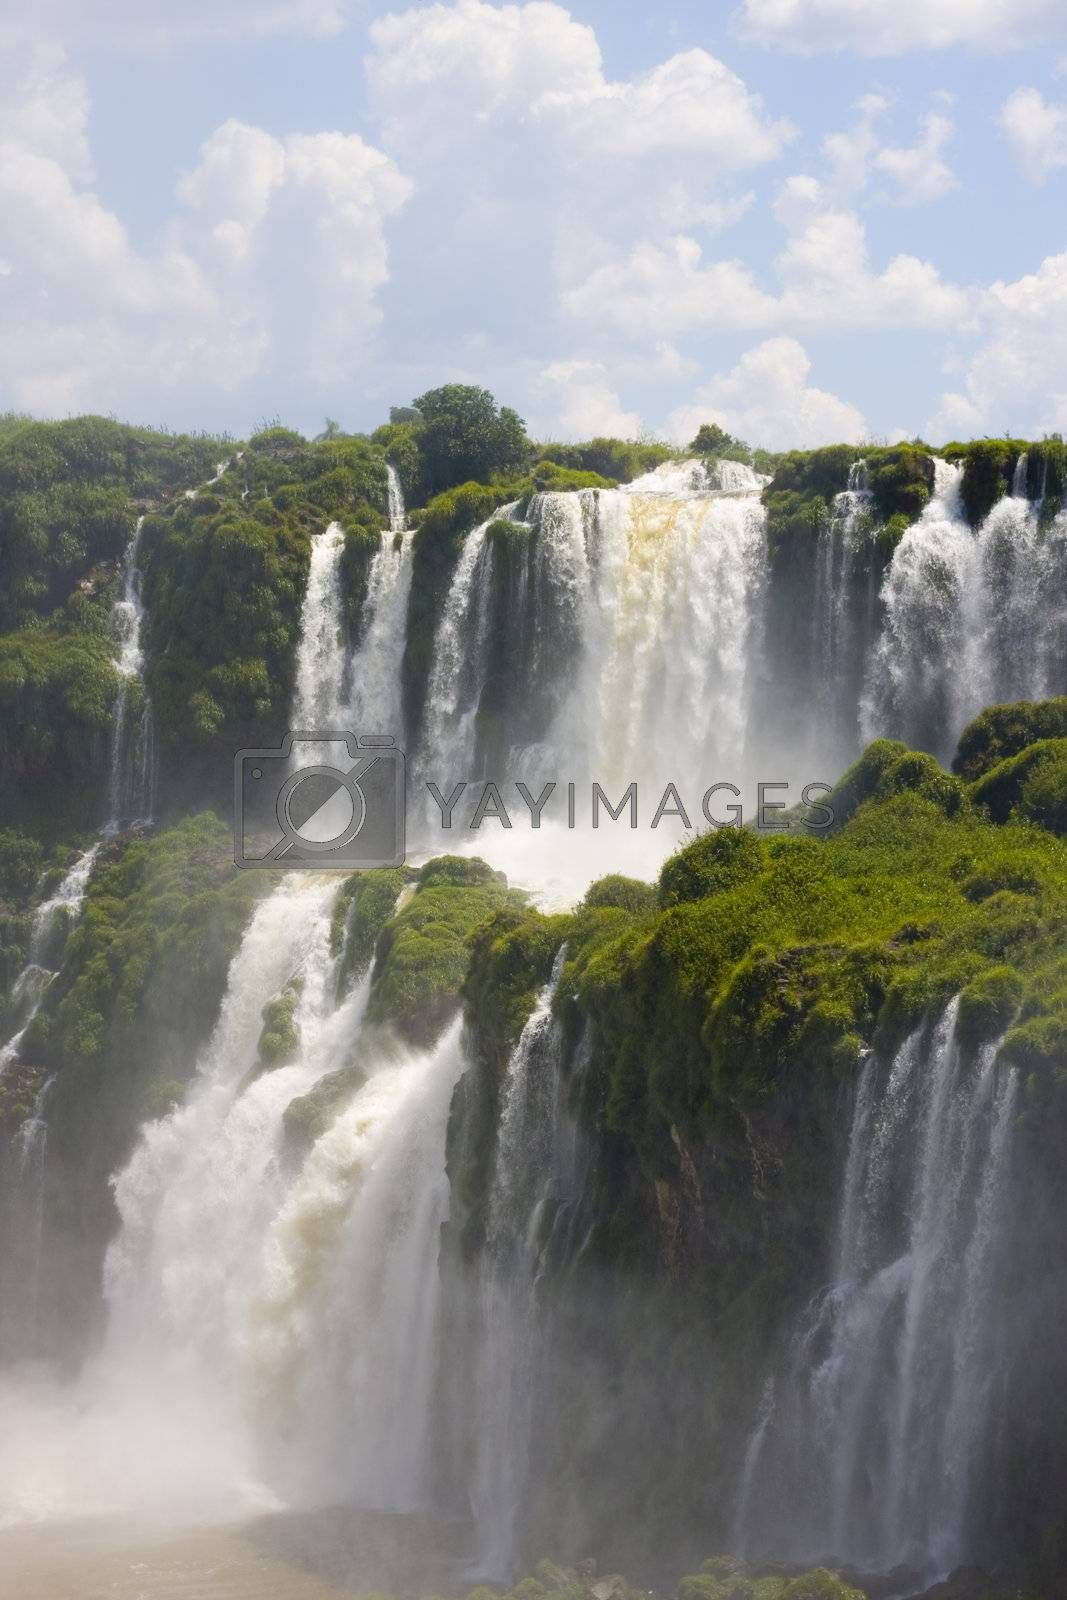 Part of the Iguassu falls on the argentinian side.